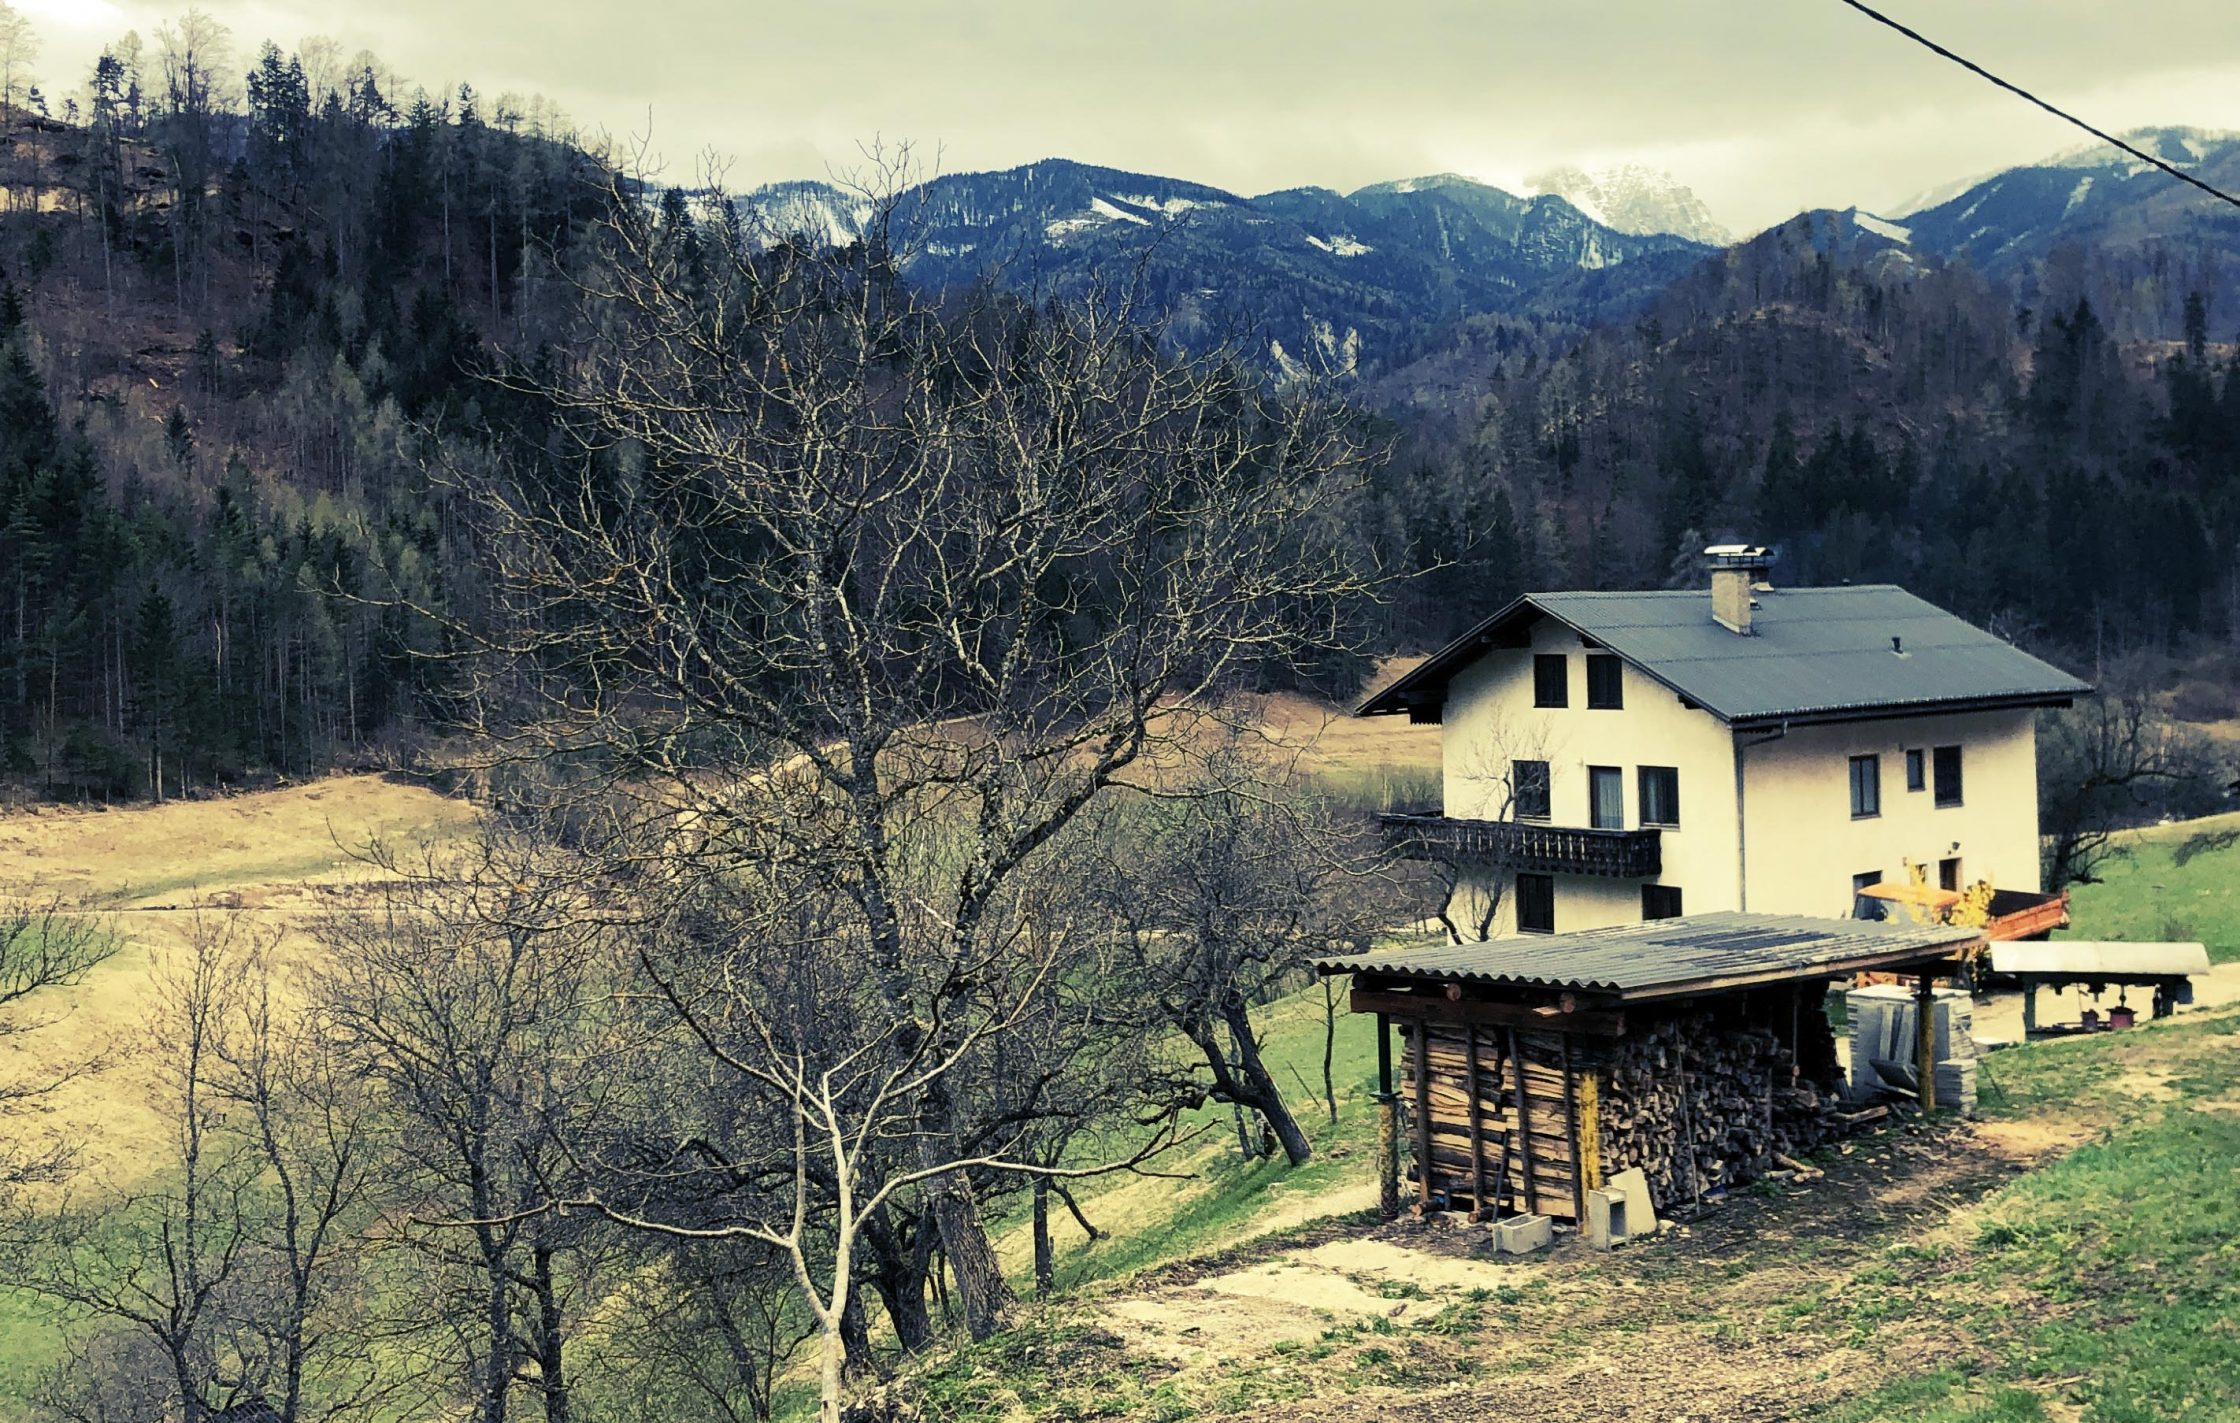 an old house in the landscape